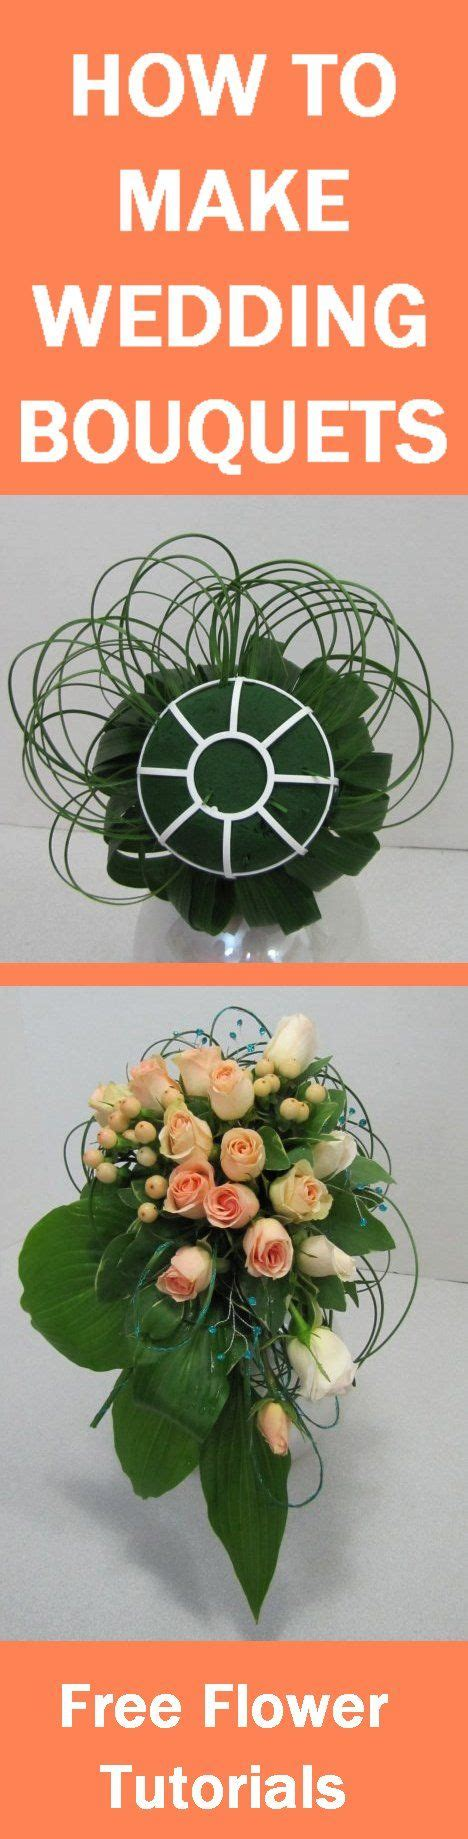 Wedding Bouquet Tutorial by How To Make Wedding Bouquets Free Flower Tutorials Learn